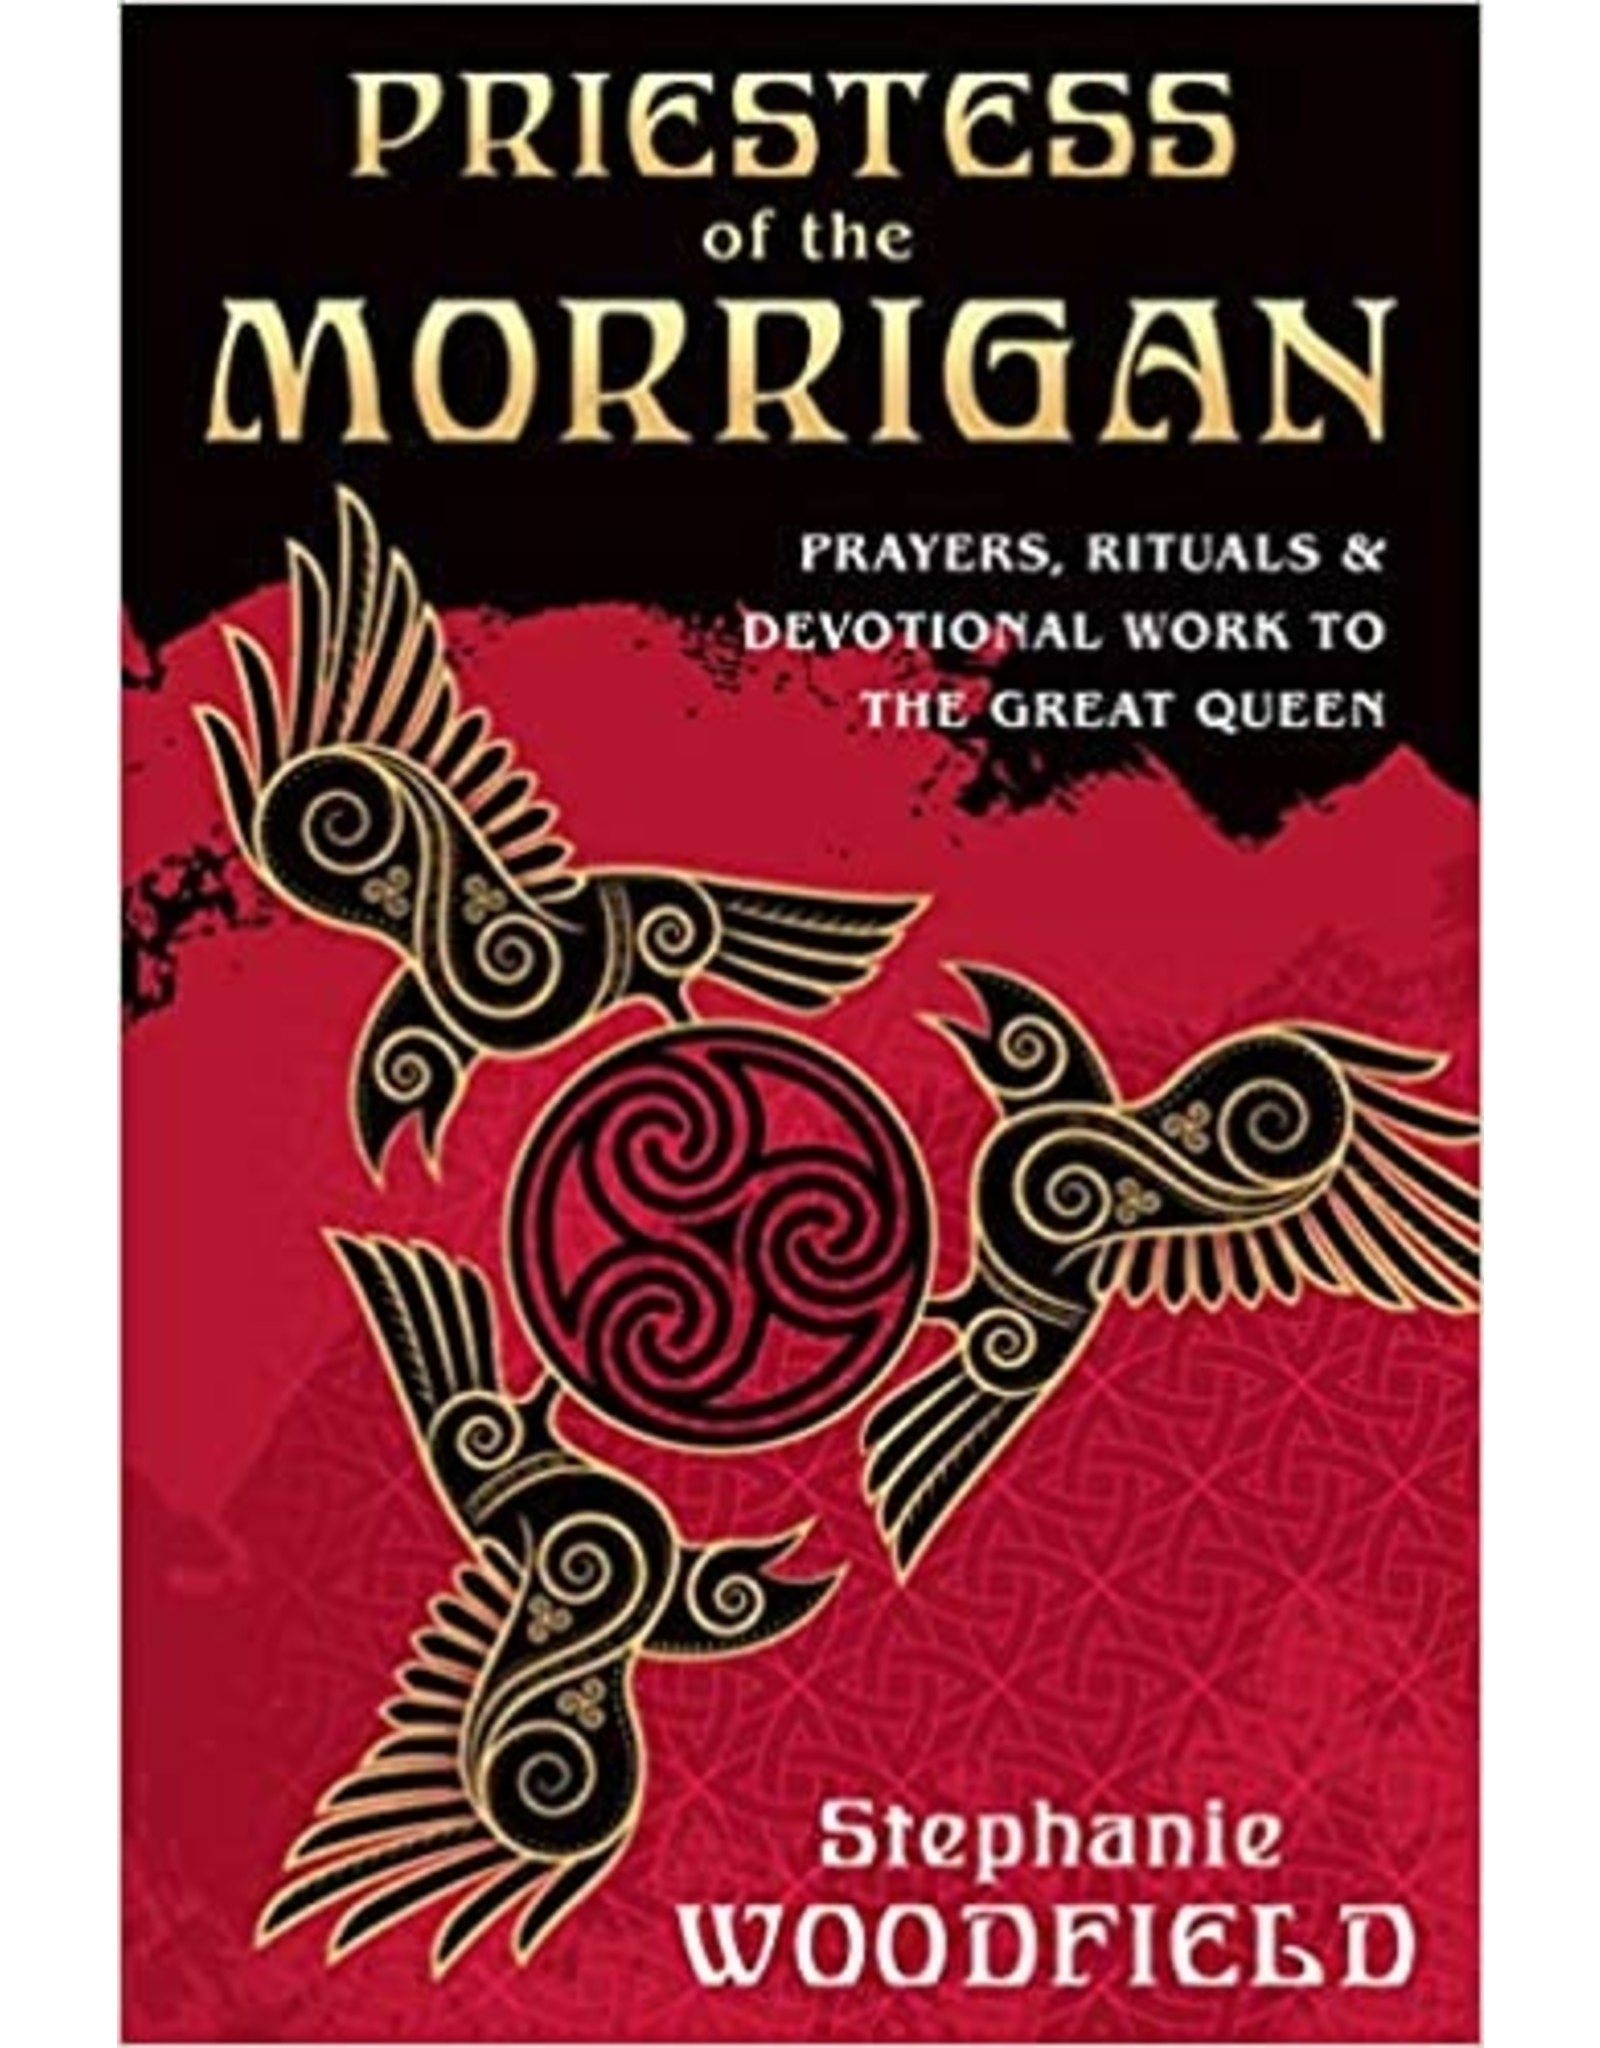 Priestess of the Morrigan: Prayers, Rituals & Devotional Work to the Great Queen